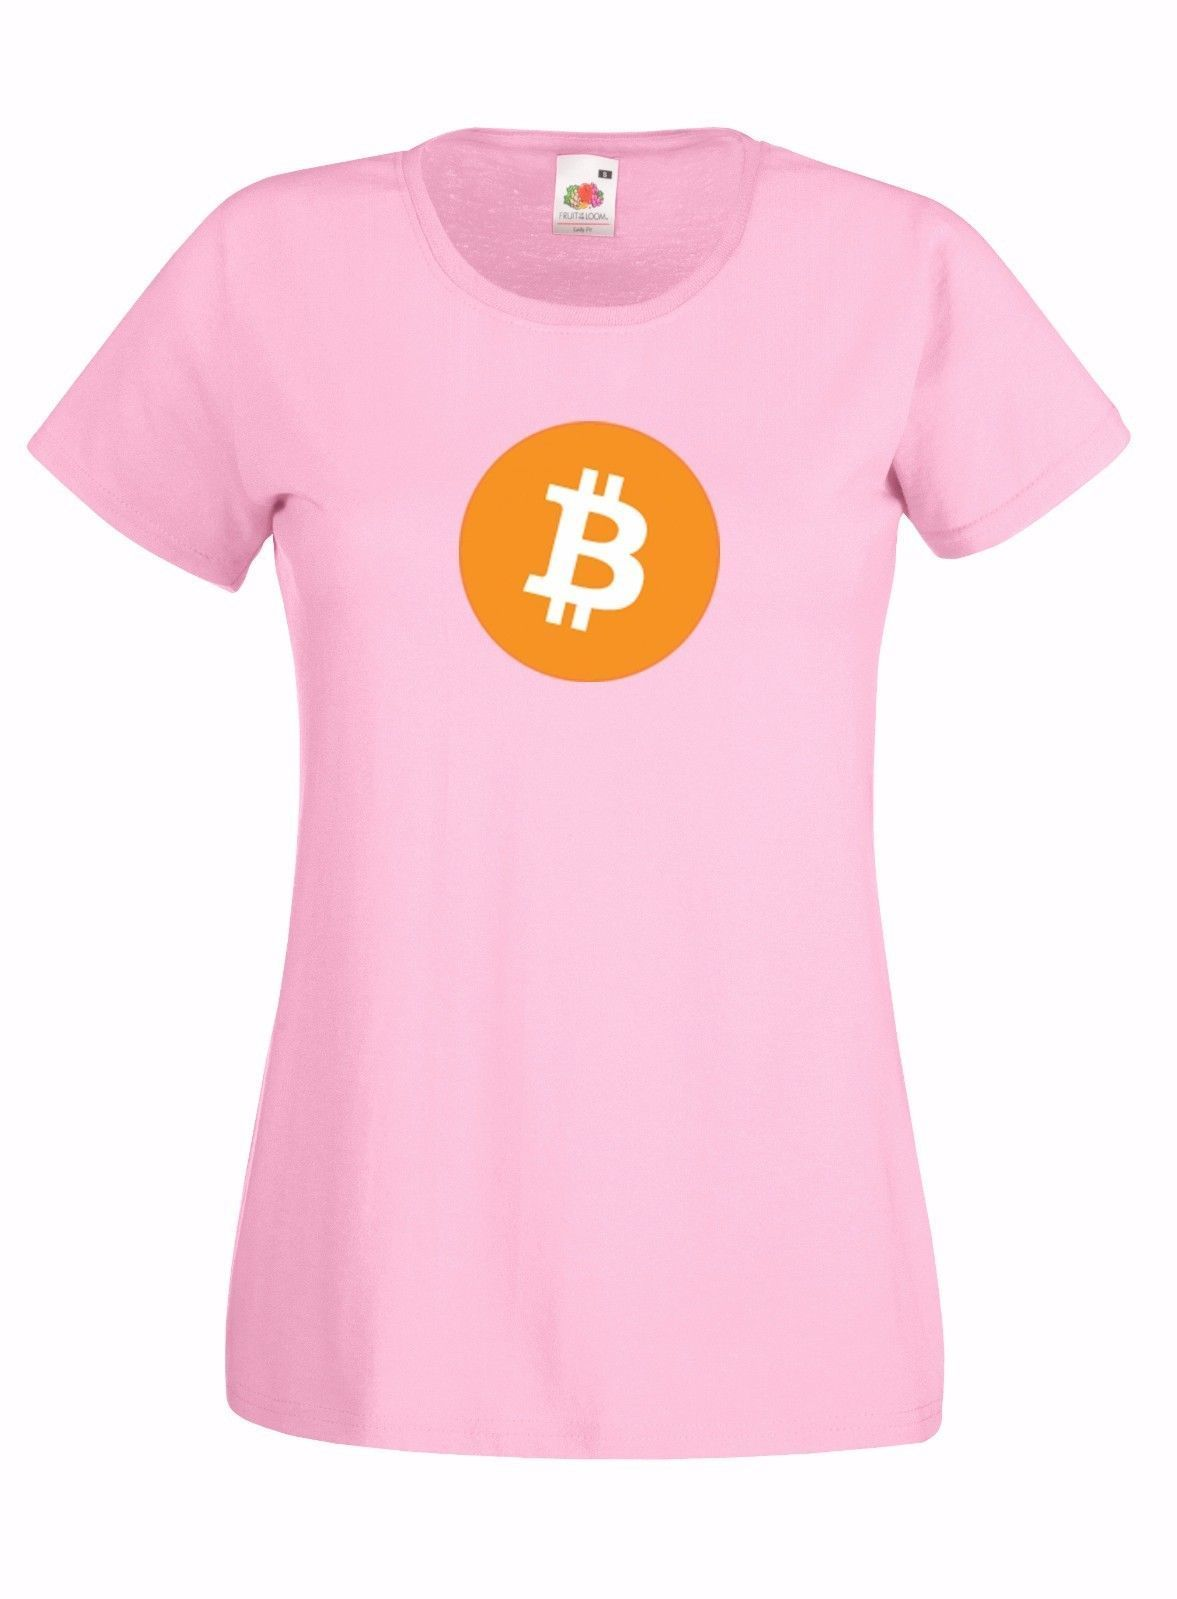 BITCOIN INSPIRED GRAPHIC LADIES SKINNY HIGH QUALITY 100% COTTON T-SHIRT 00b265460